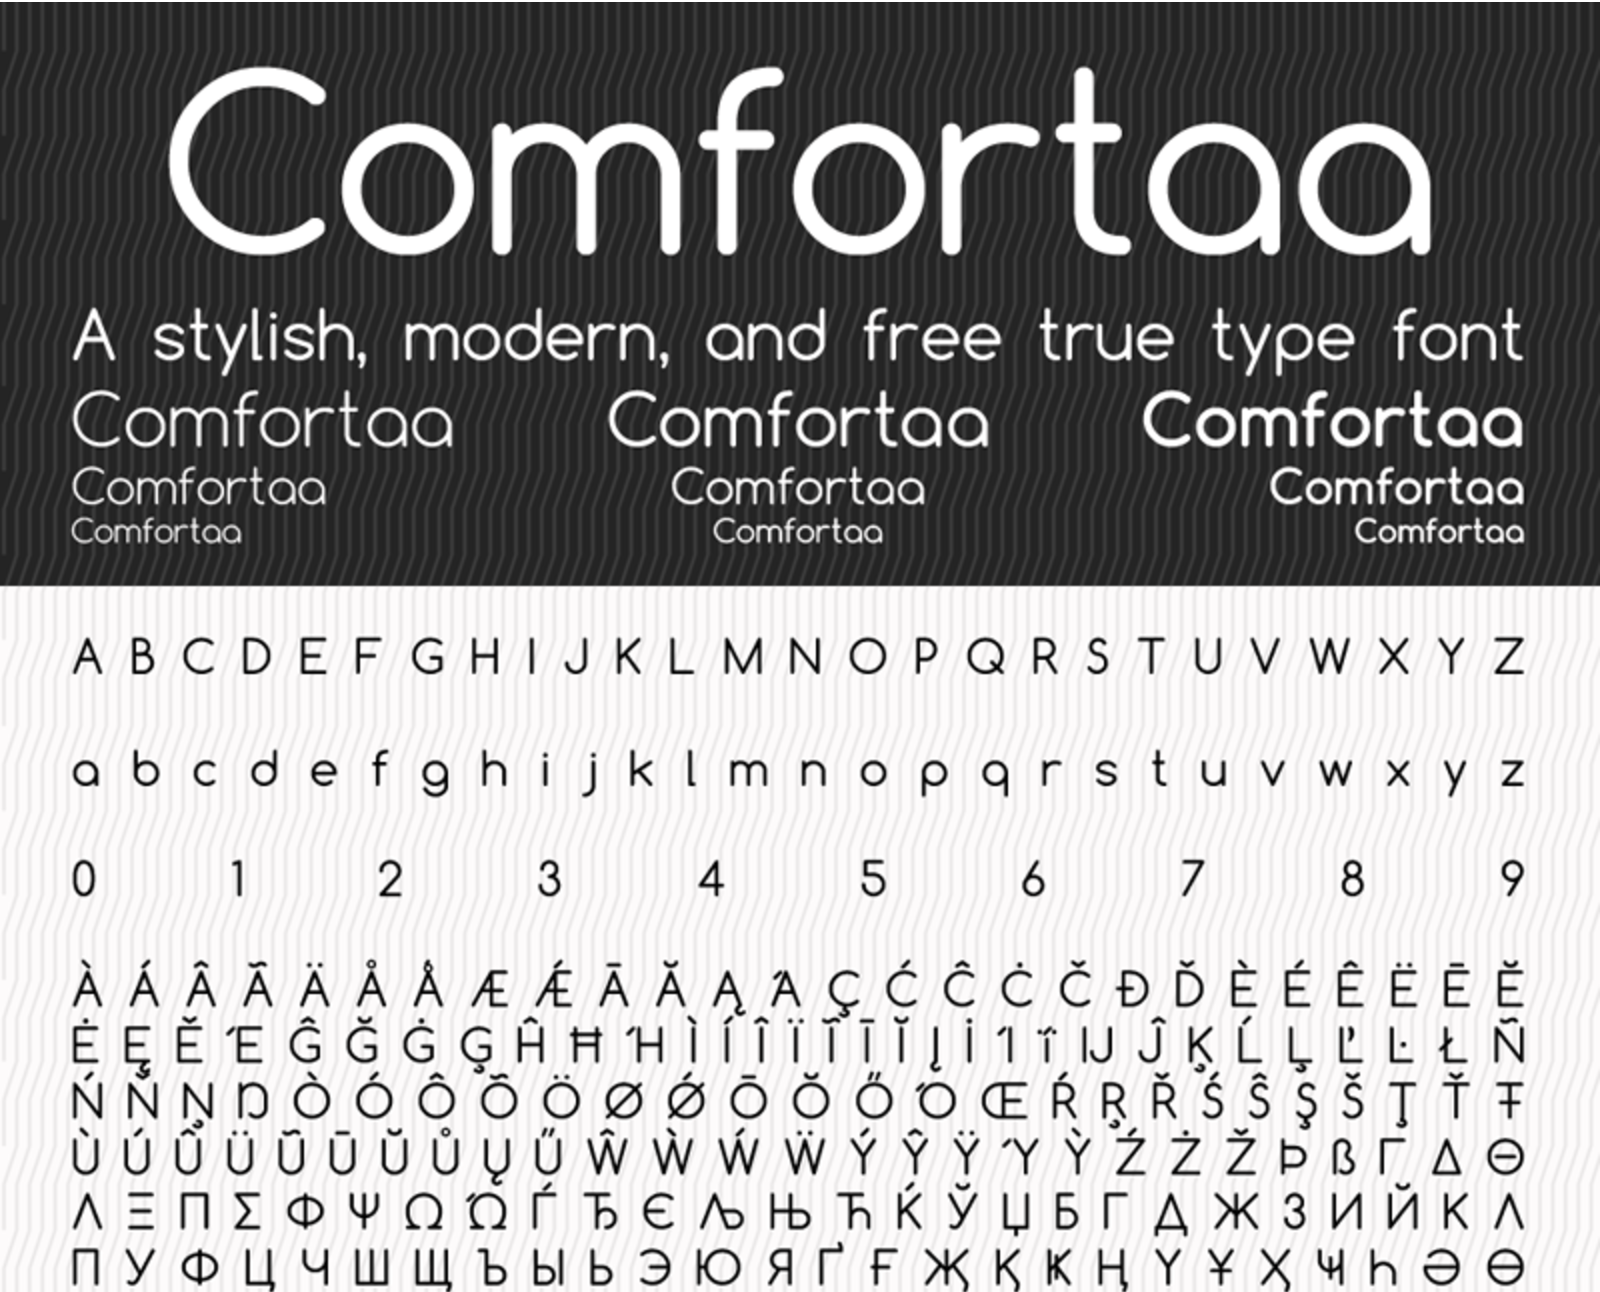 Dragon Digital - 9 Free Minimalistic Fonts To Use On Your